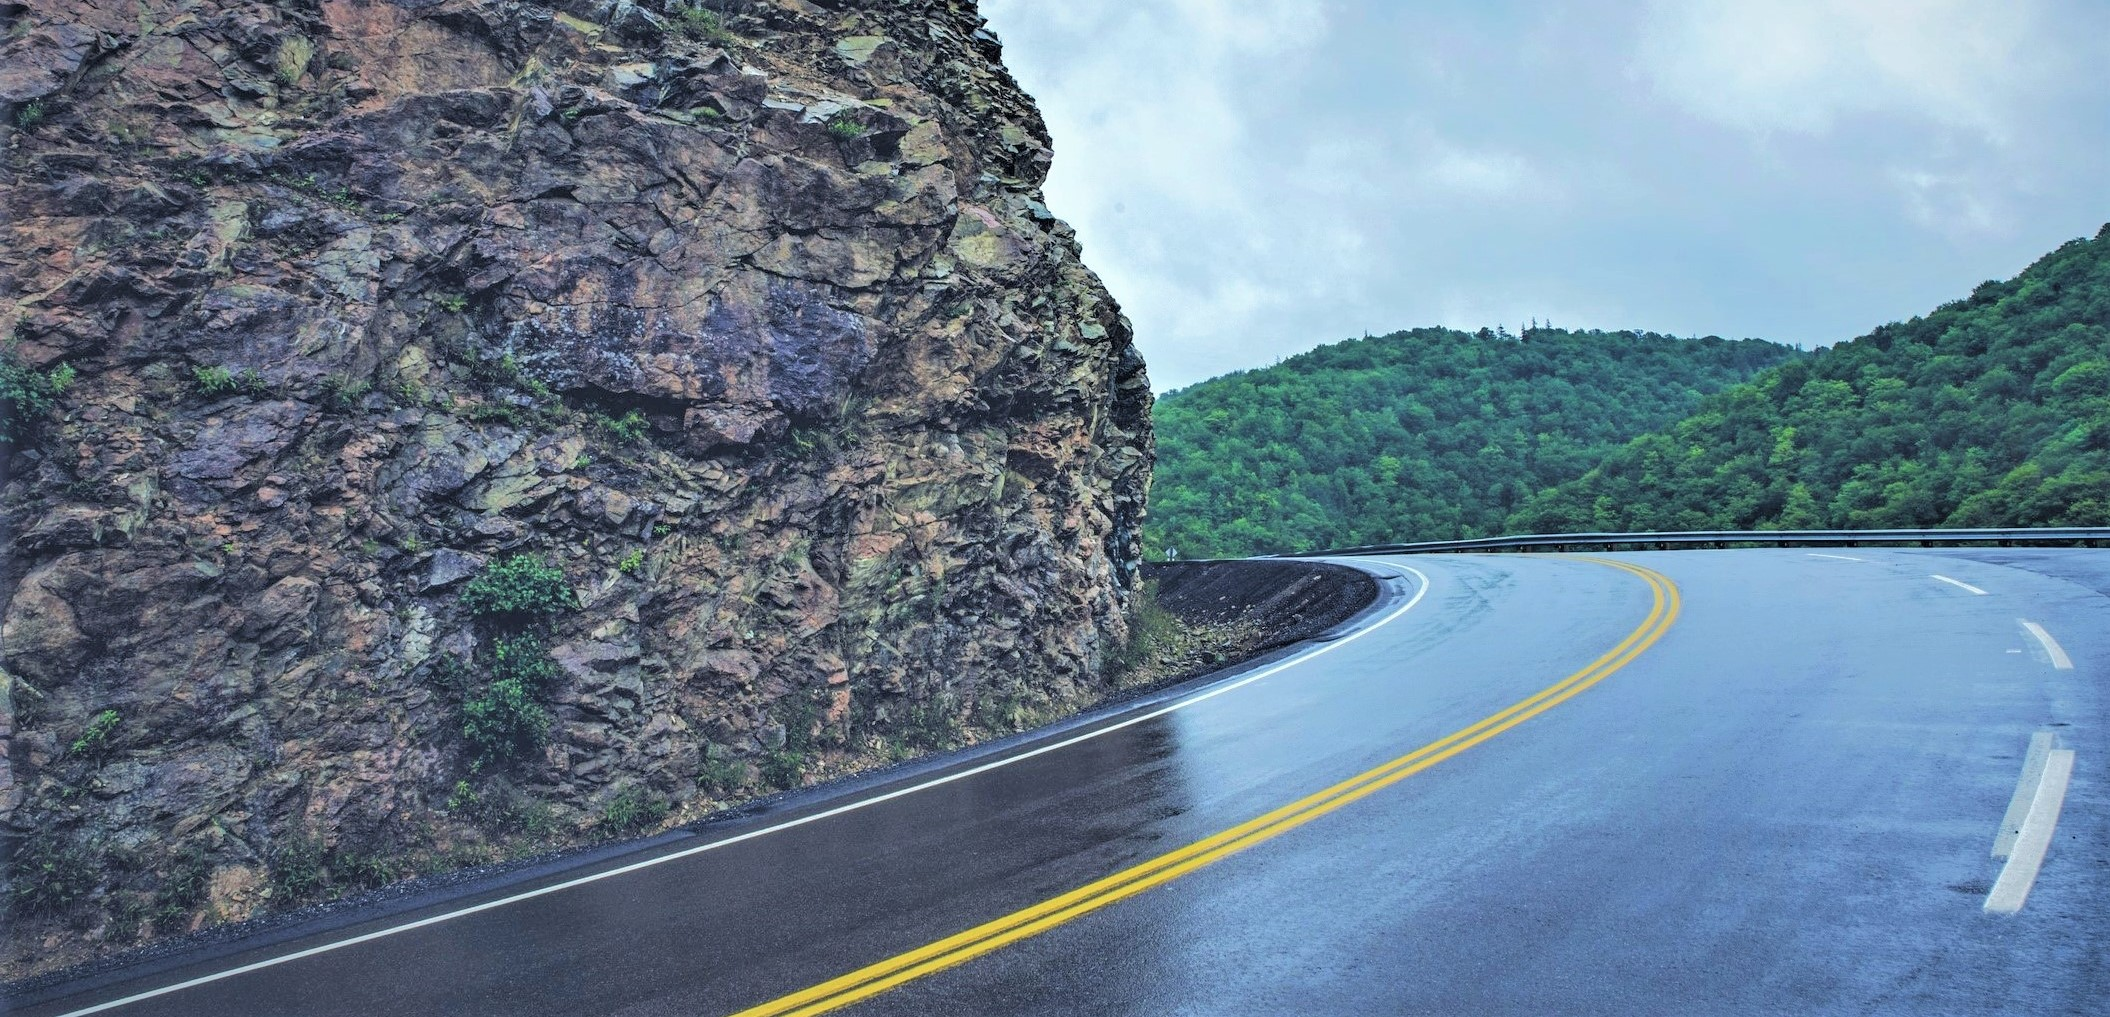 road with sharp curve around a rock formation